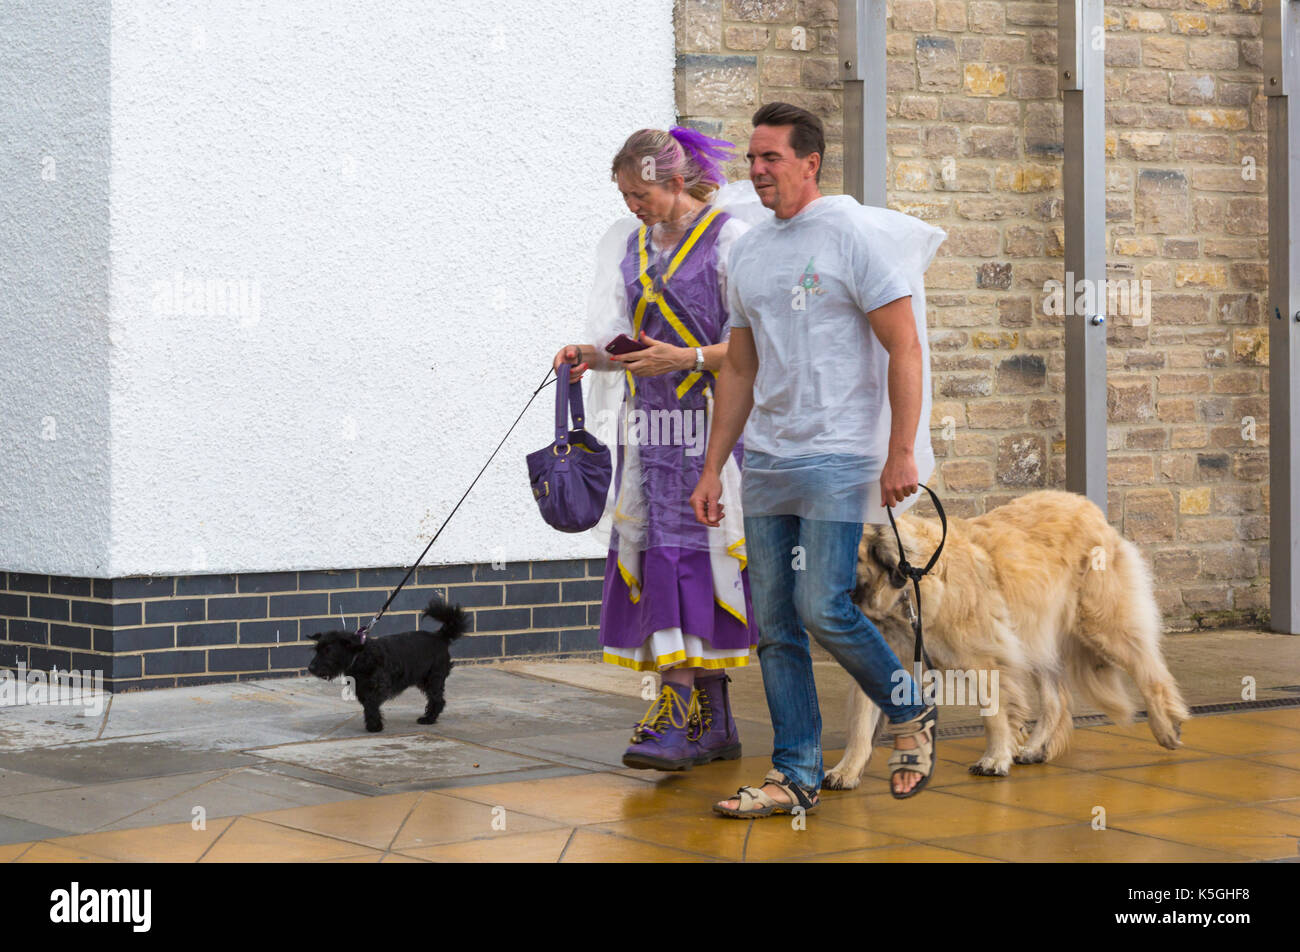 Swanage, Dorset, UK. 9th Sep, 2017. UK weather: heavy rain and thunder at Swanage. Couple walking dogs along promenade wearing transparent ponchos for protection in the rain. Credit: Carolyn Jenkins/Alamy Live News - Stock Image